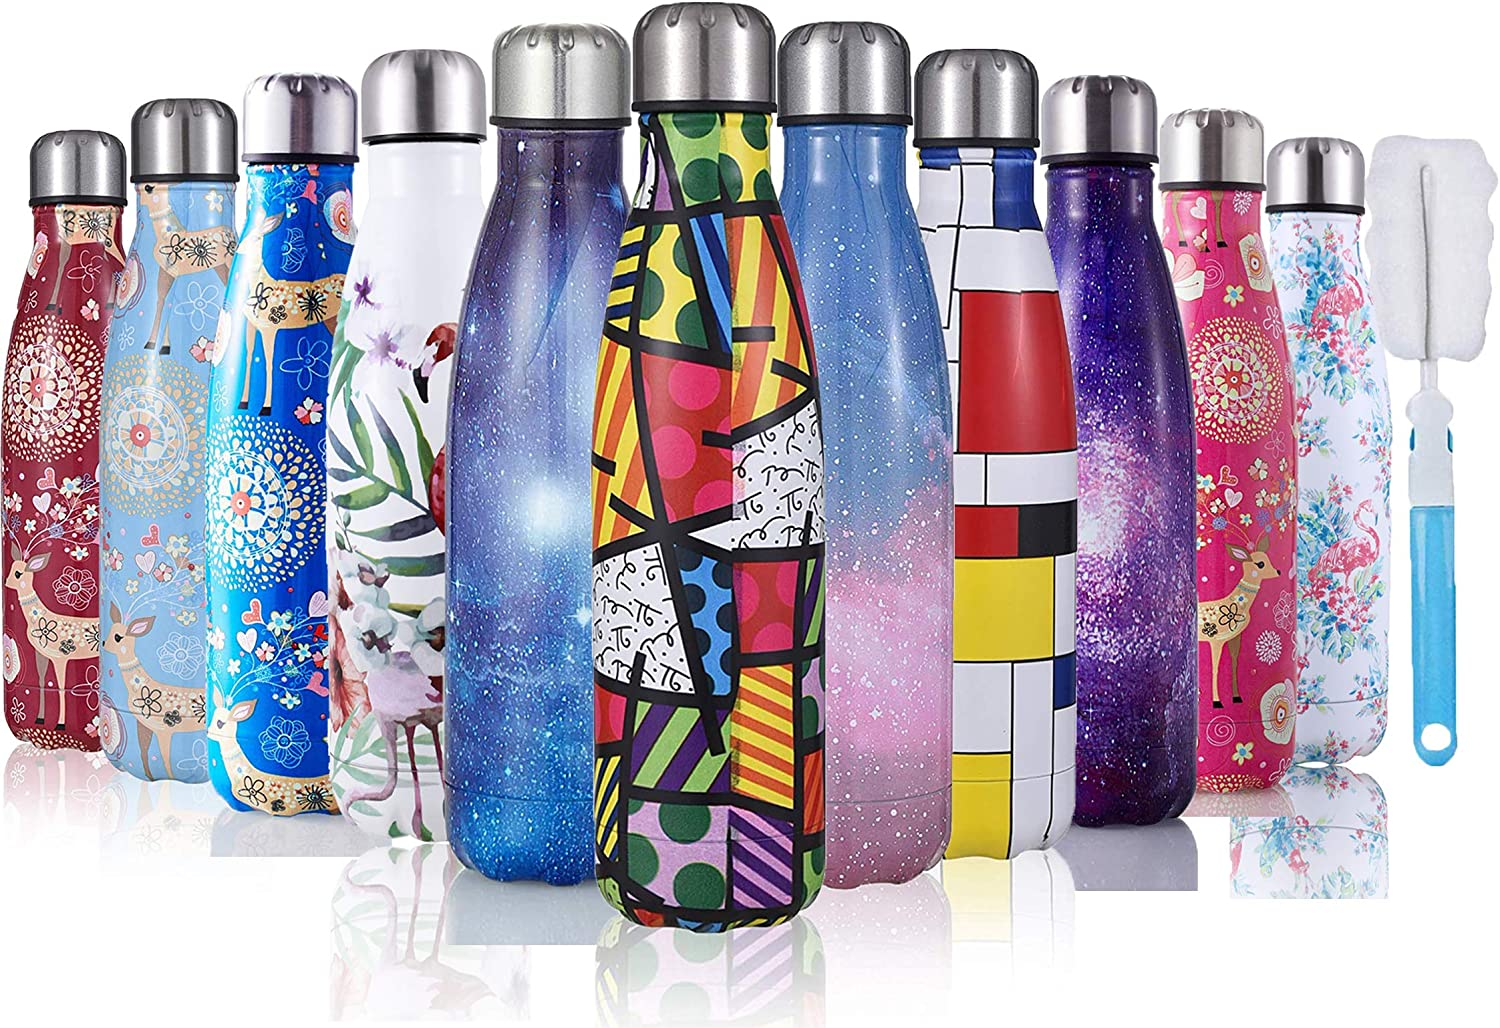 JOGVELO Stainless Steel Vacuum Insulated Water Bottle 17oz with Cleaning Brush, Double Walled Cola Shape Thermos, Blue Starry Sky